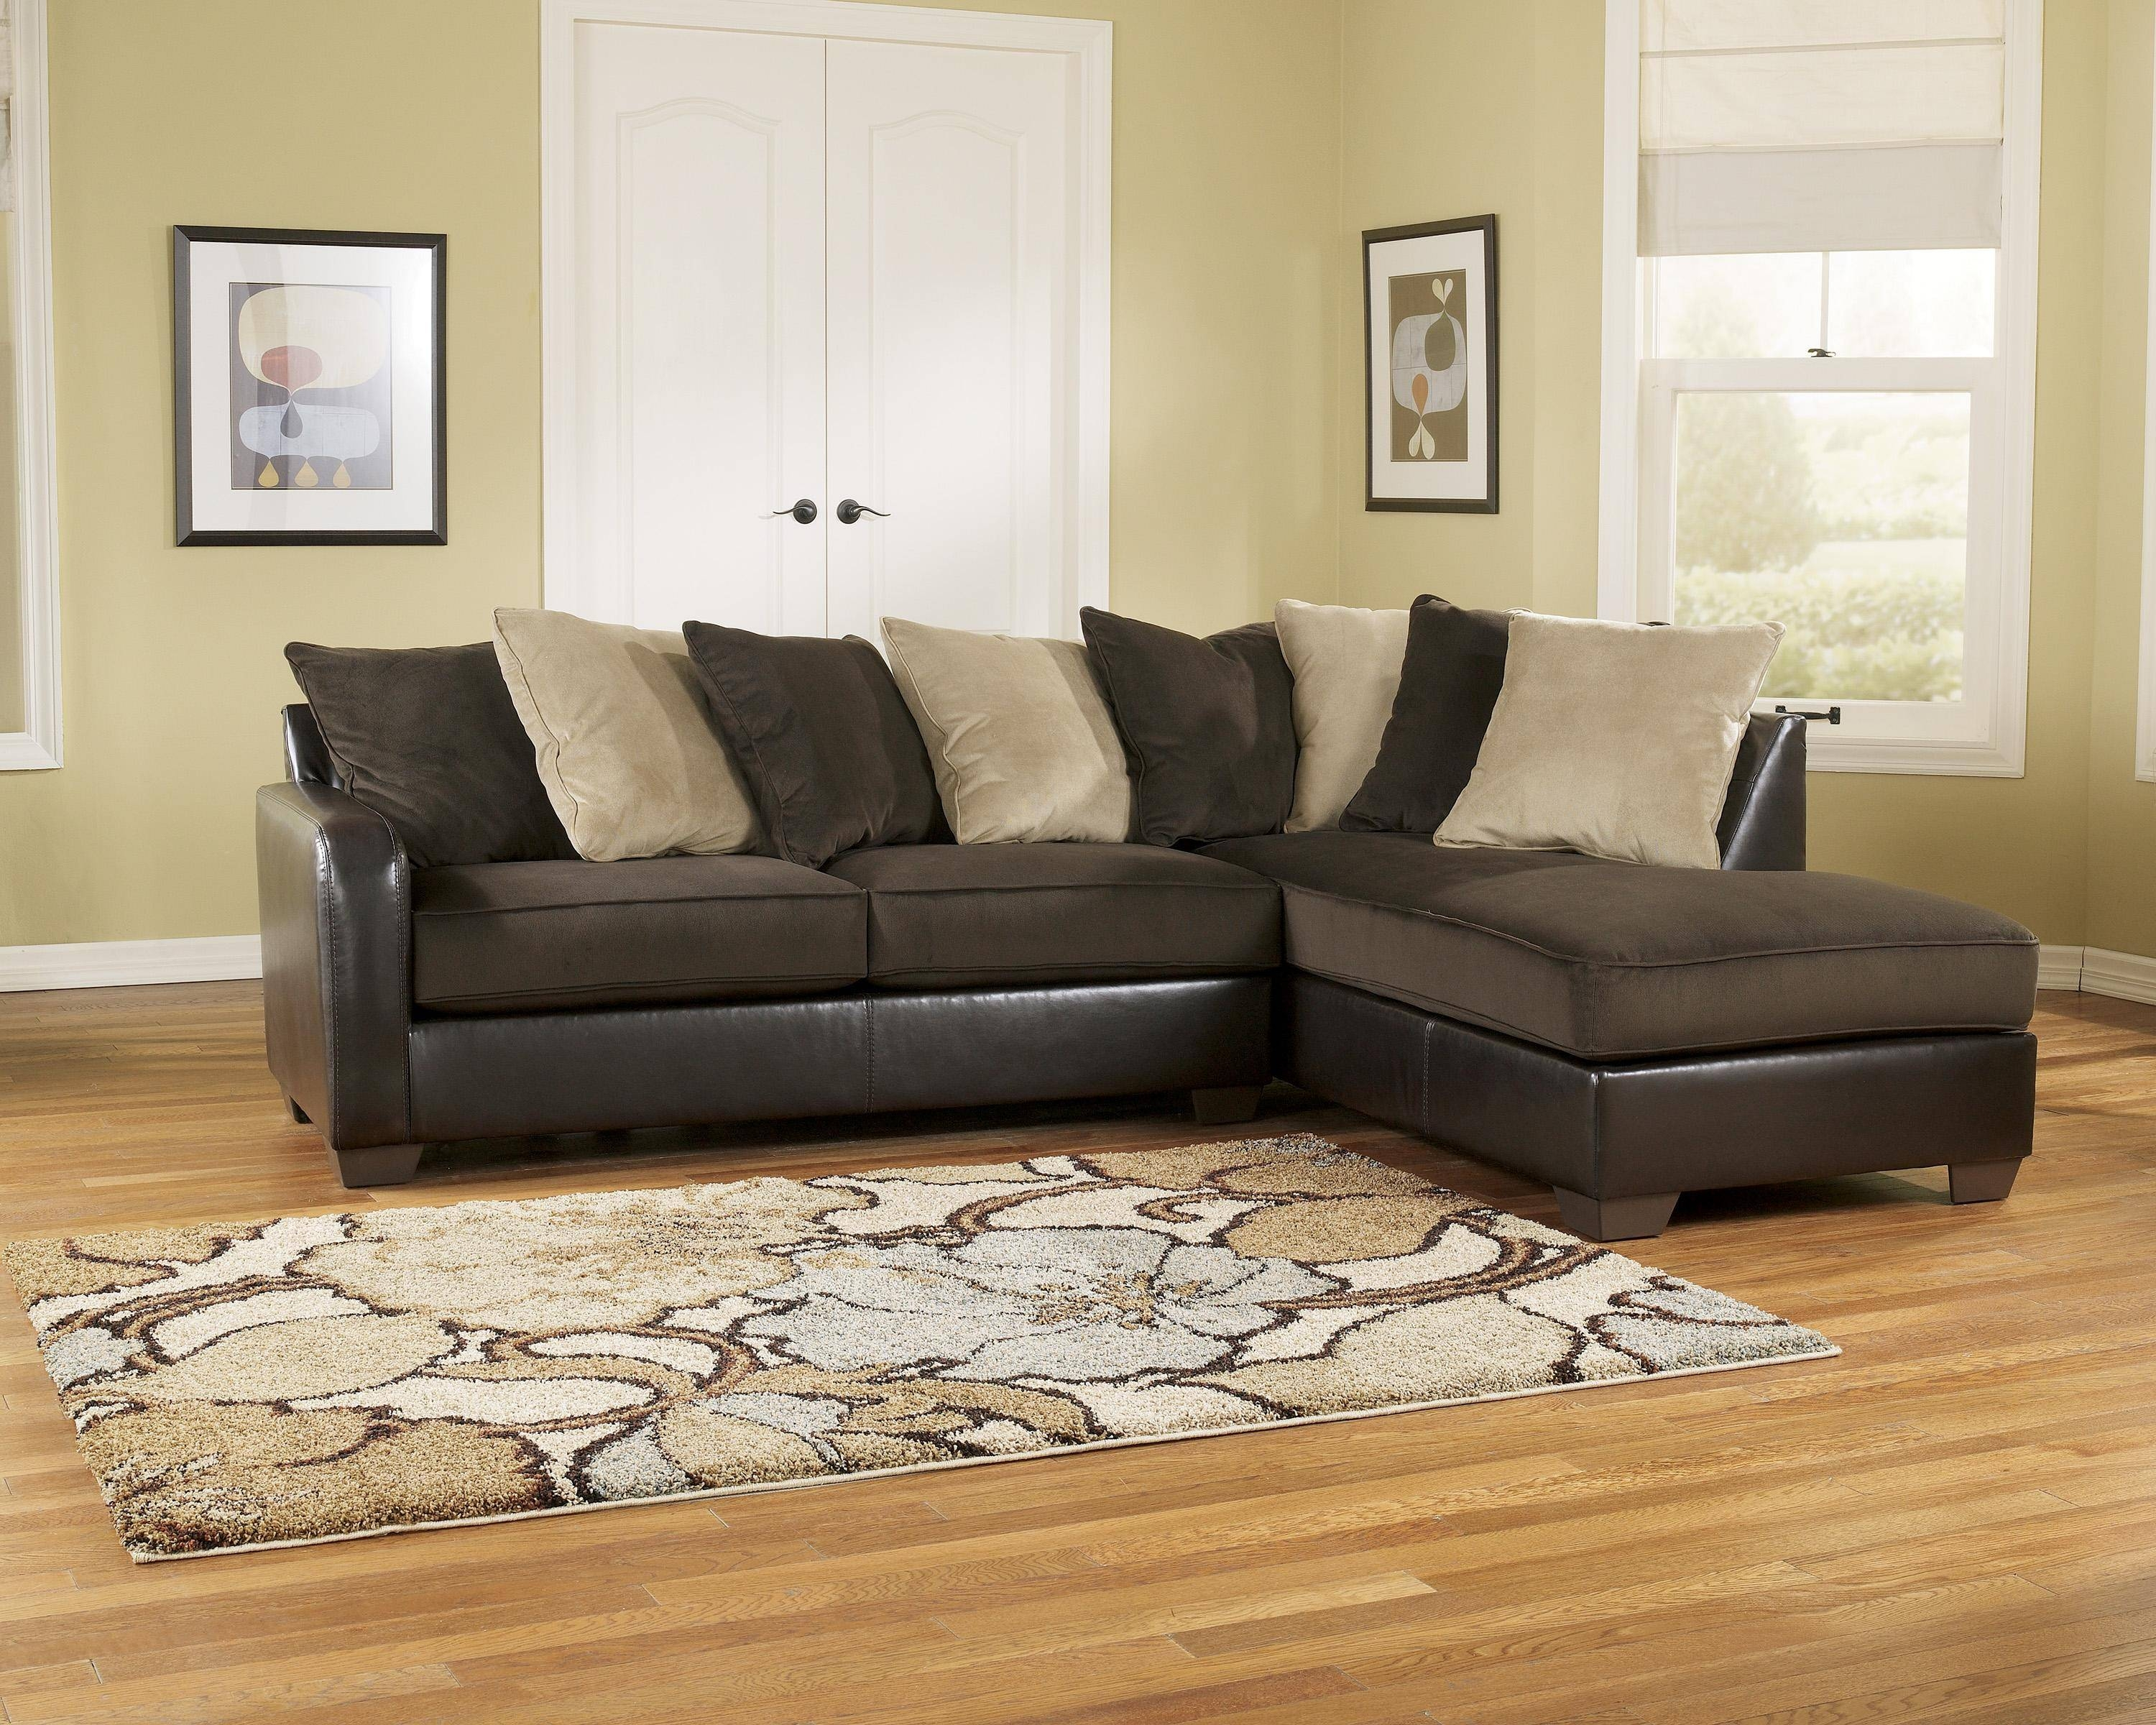 These tips should help you make a sma. 15 Best Ideas of Ashley Furniture Corduroy Sectional Sofas